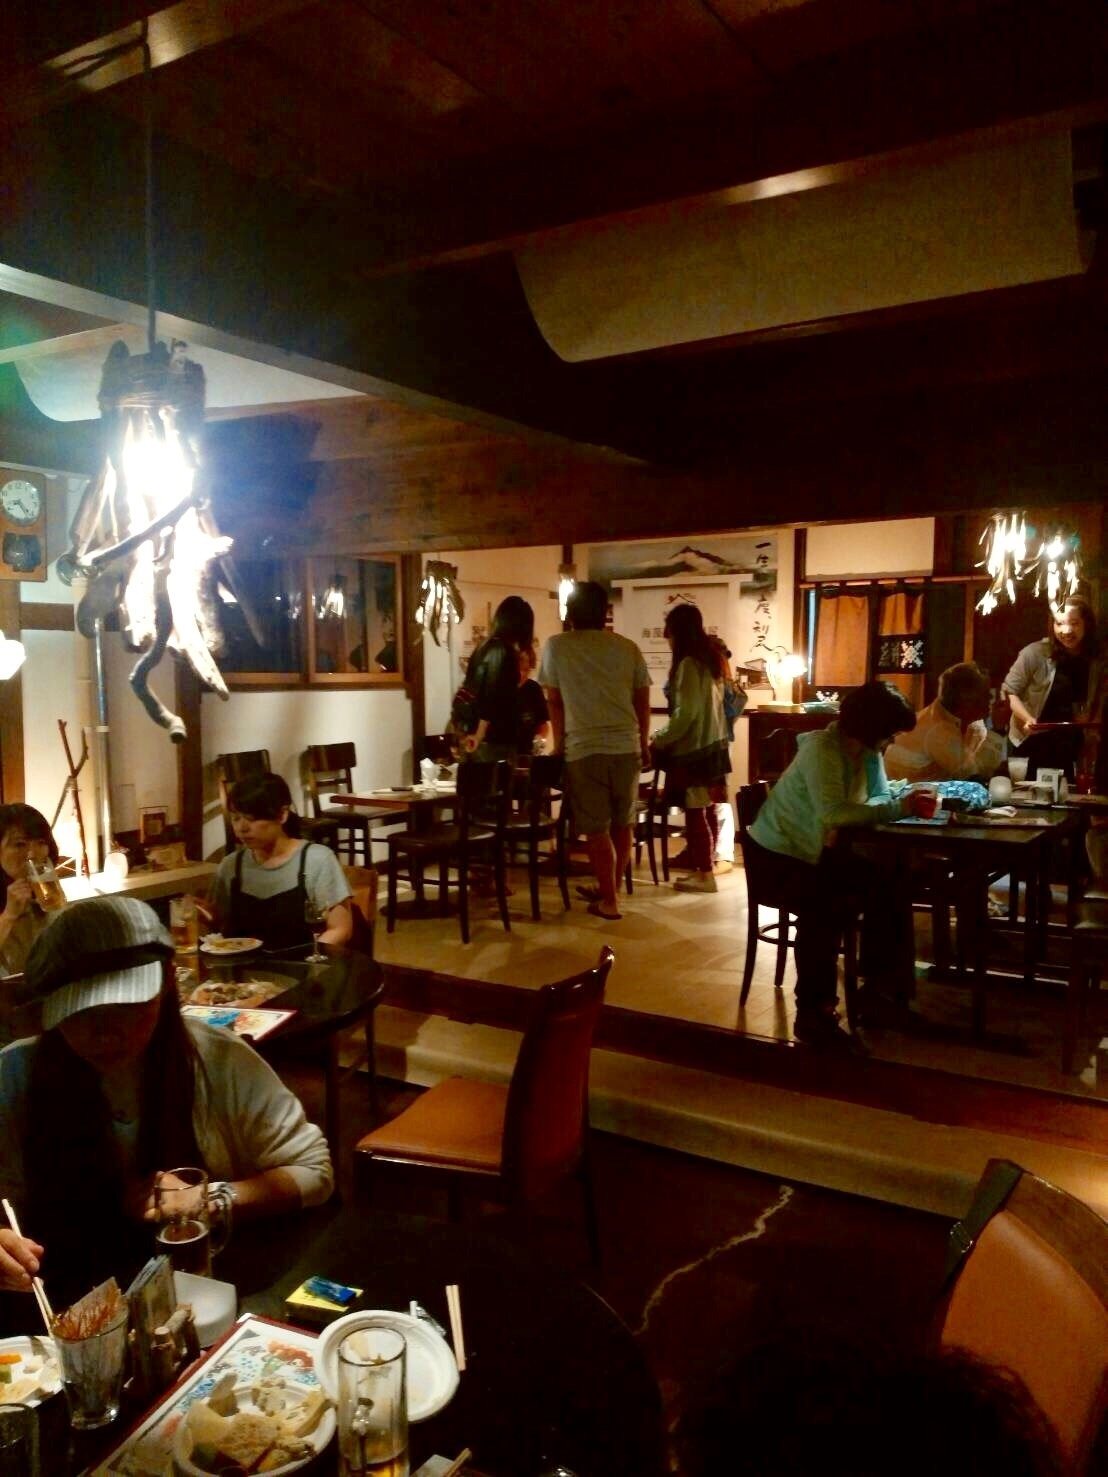 Things To Do in Dining bars, Restaurants in Dining bars